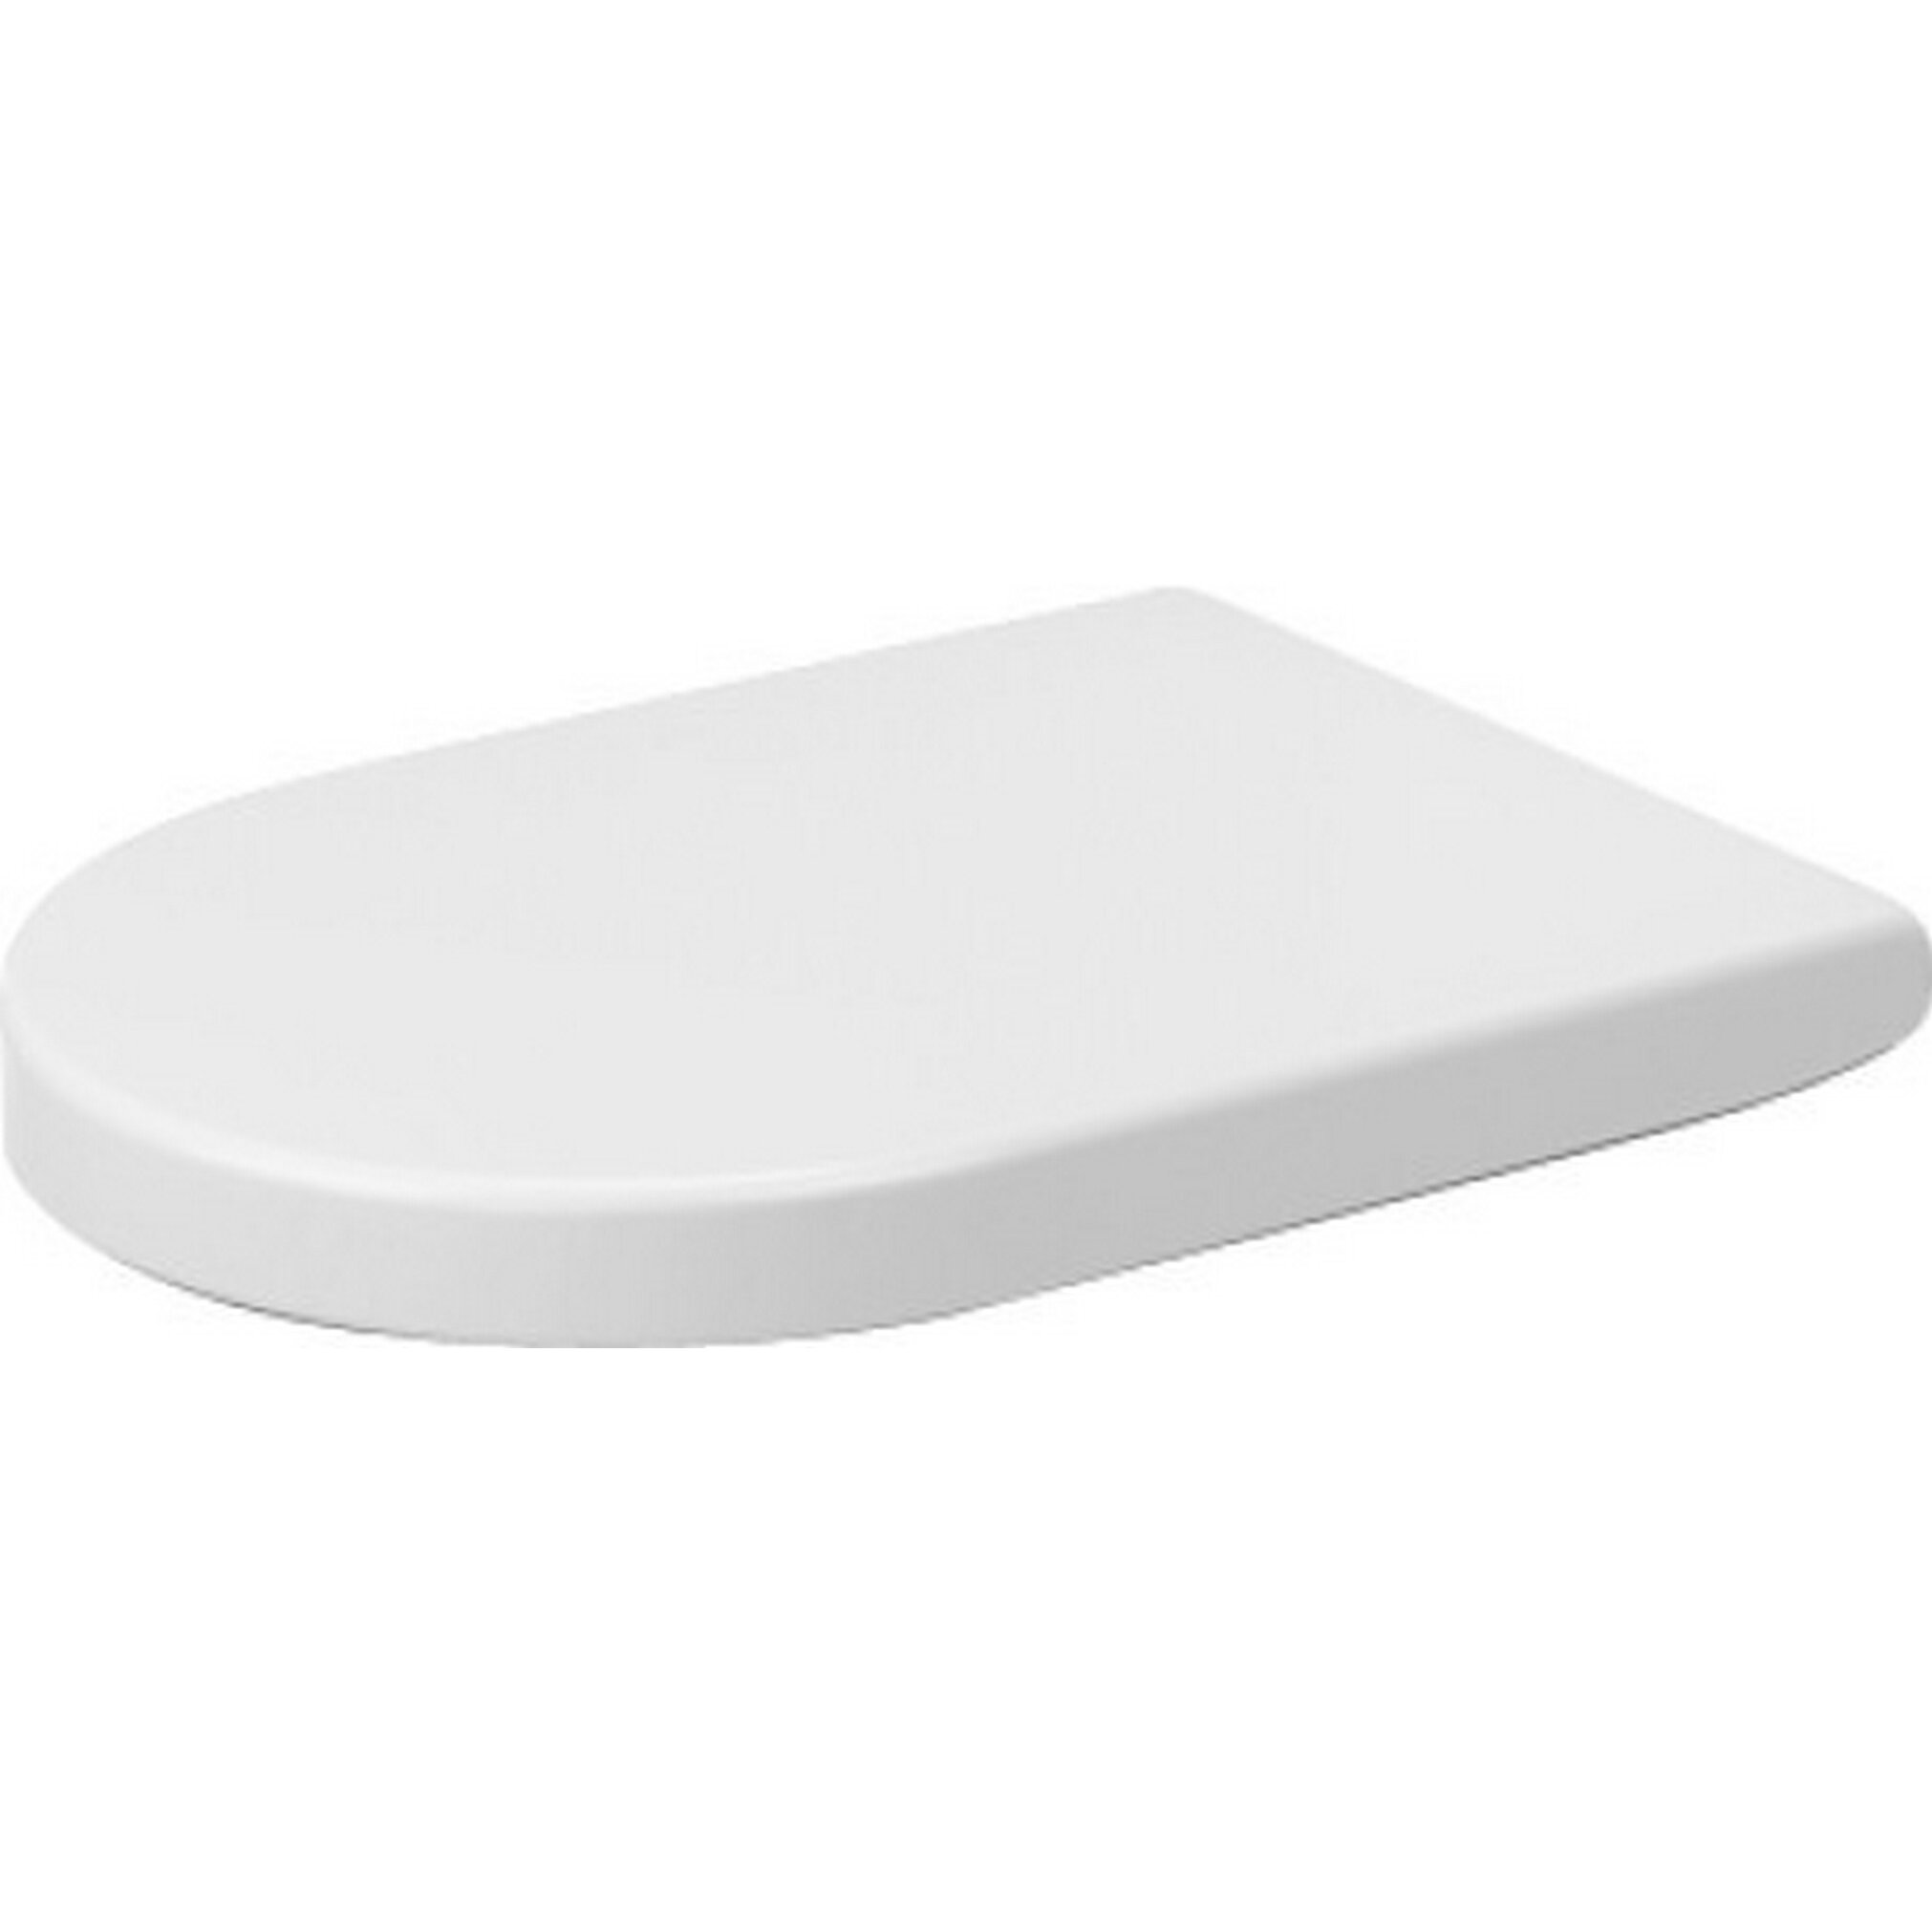 duravit starck 3 soft close toilet seat and cover reviews wayfair. Black Bedroom Furniture Sets. Home Design Ideas